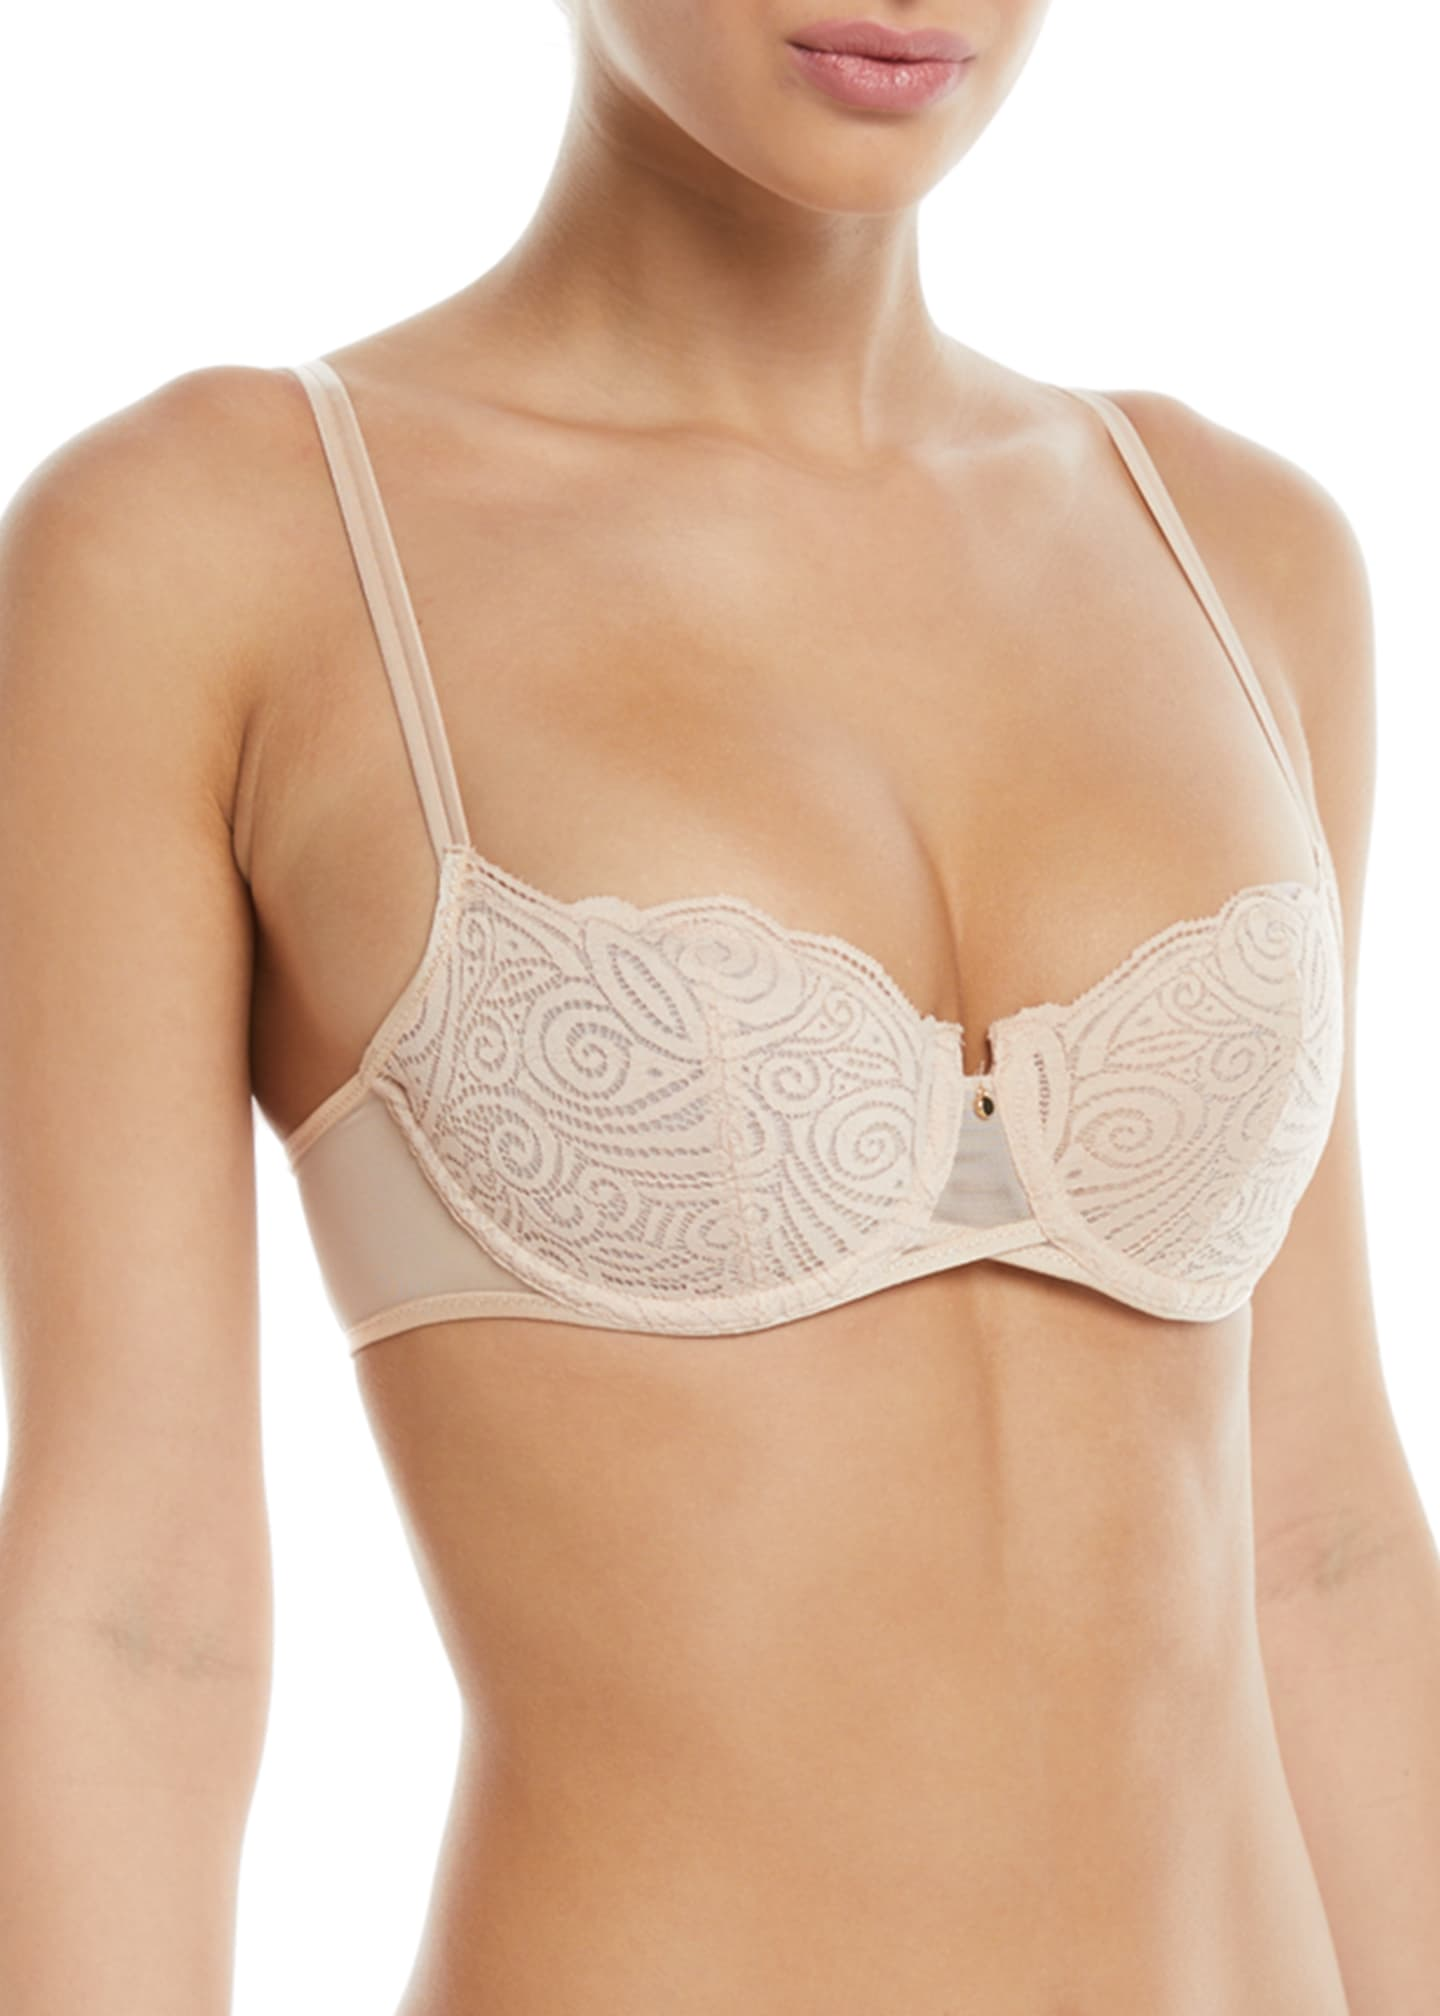 Chantelle Pyramide Unlined Lace Demi Bra